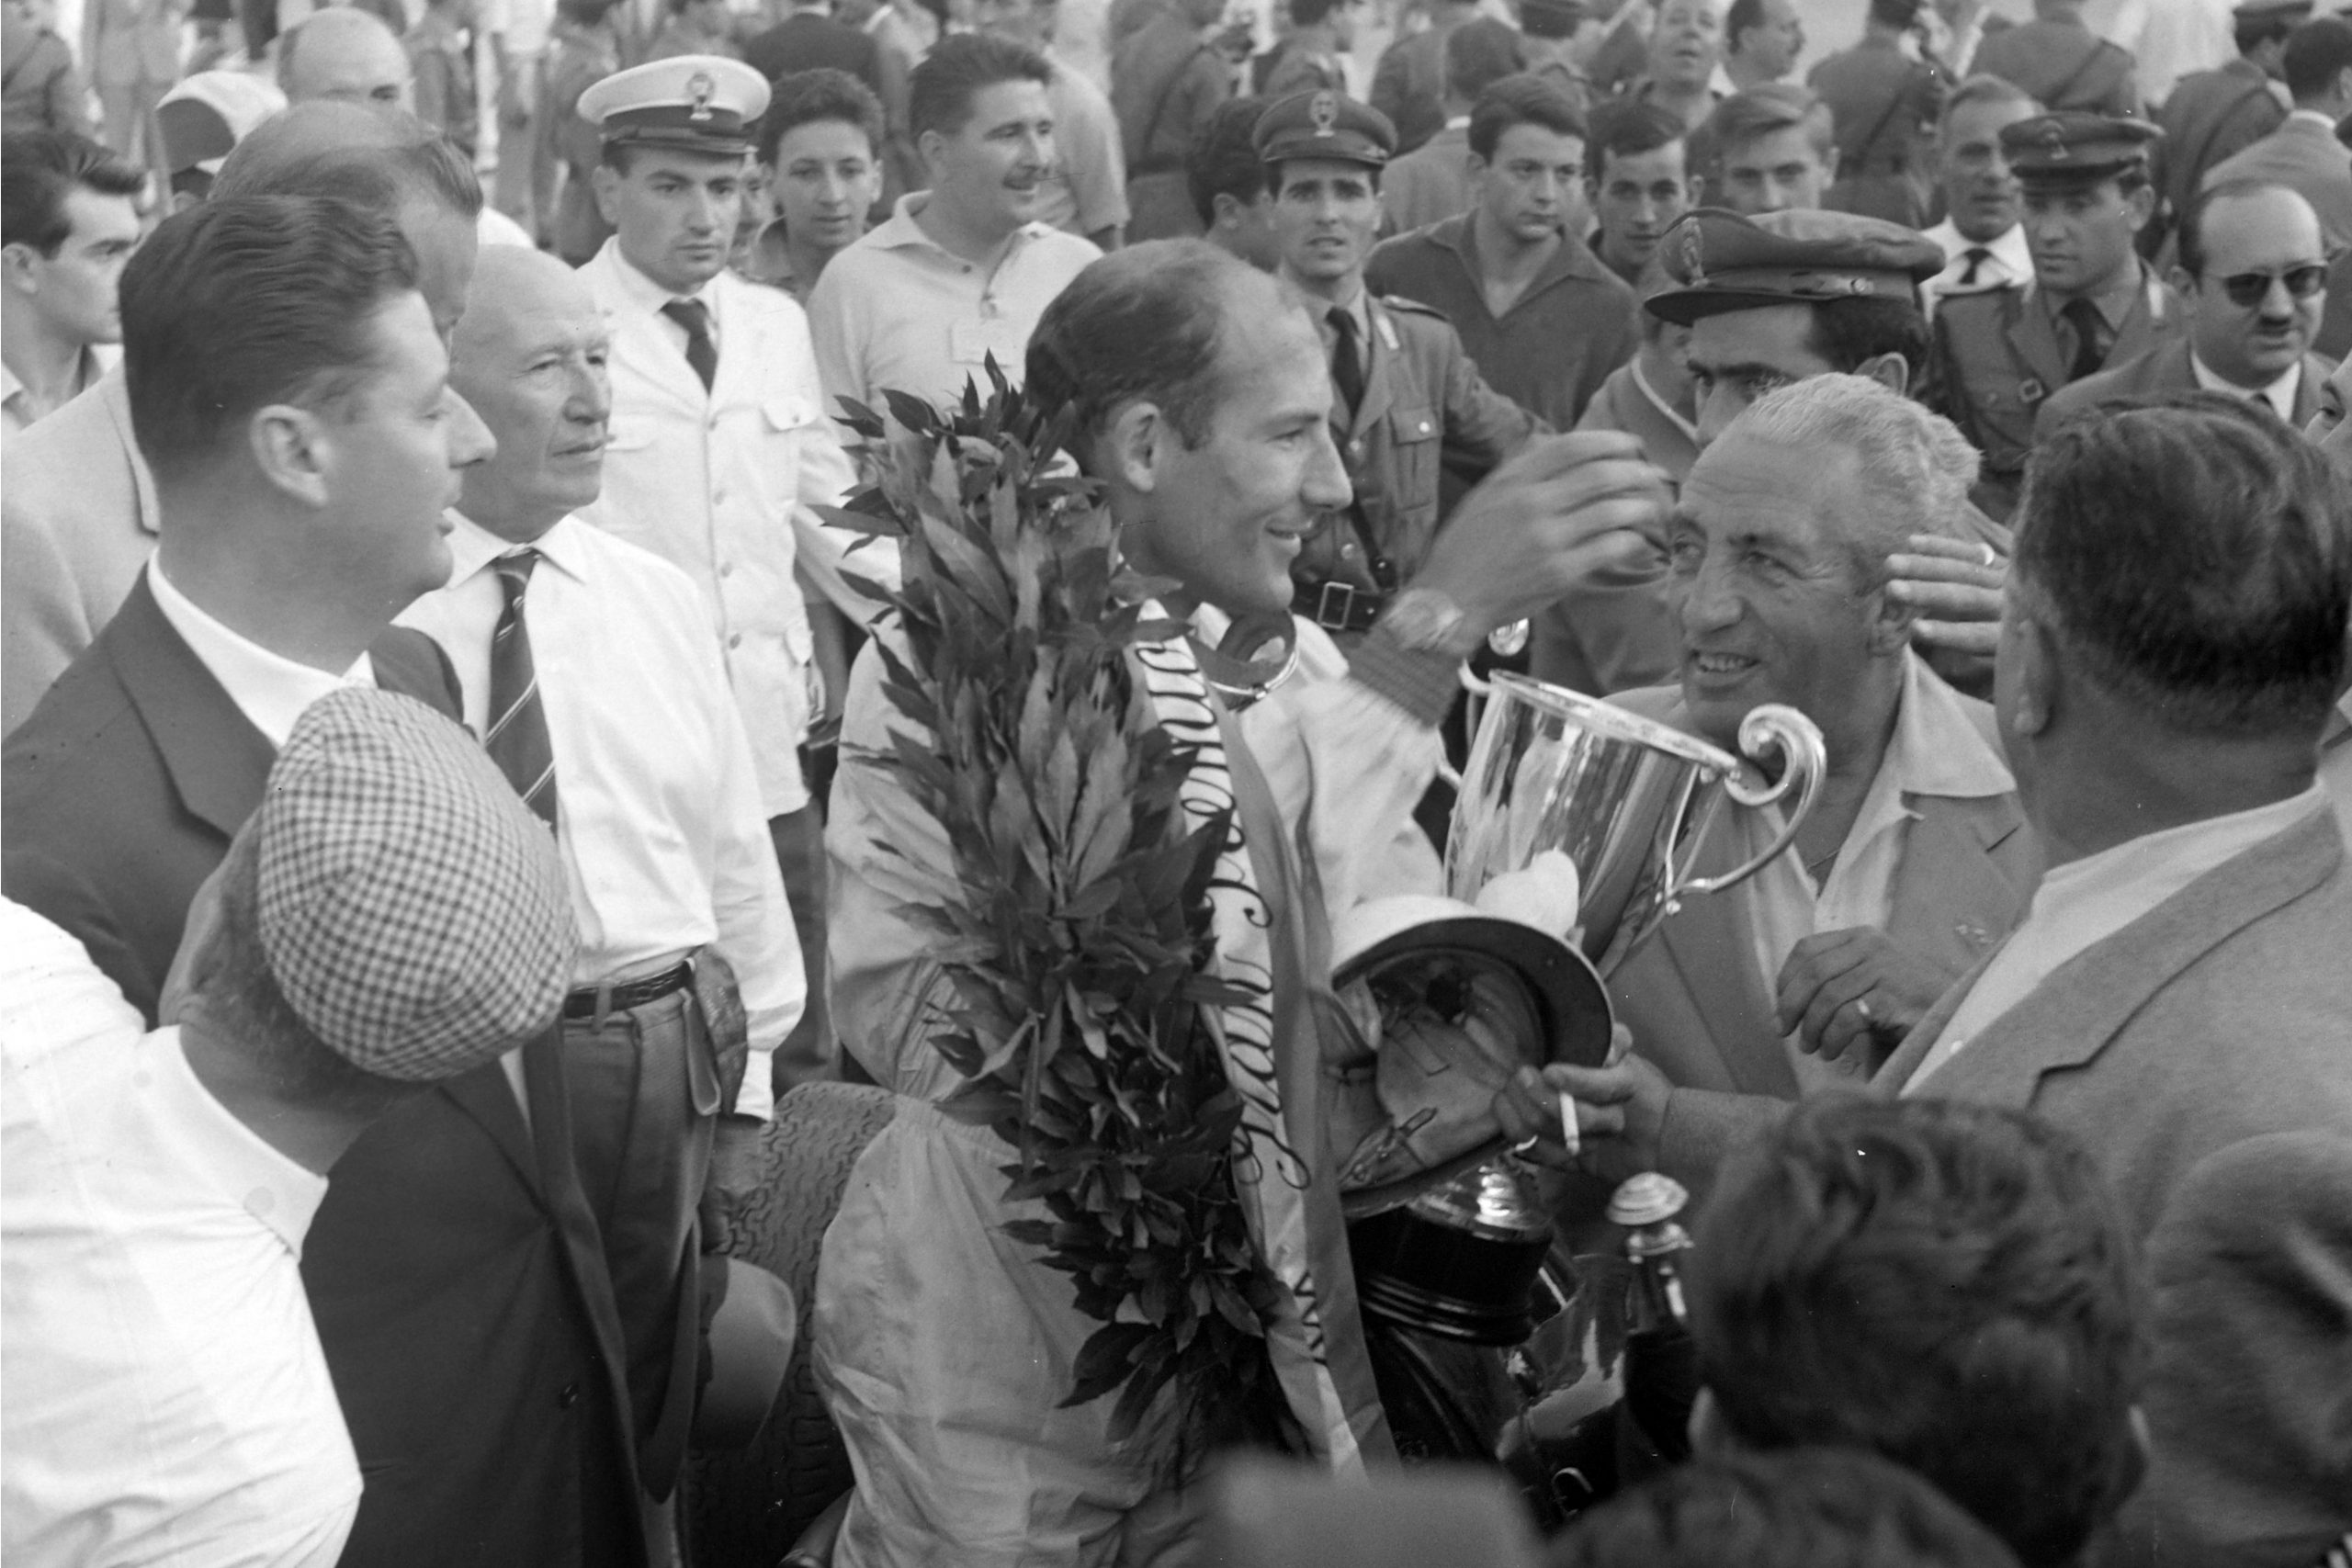 Stirling Moss after the race